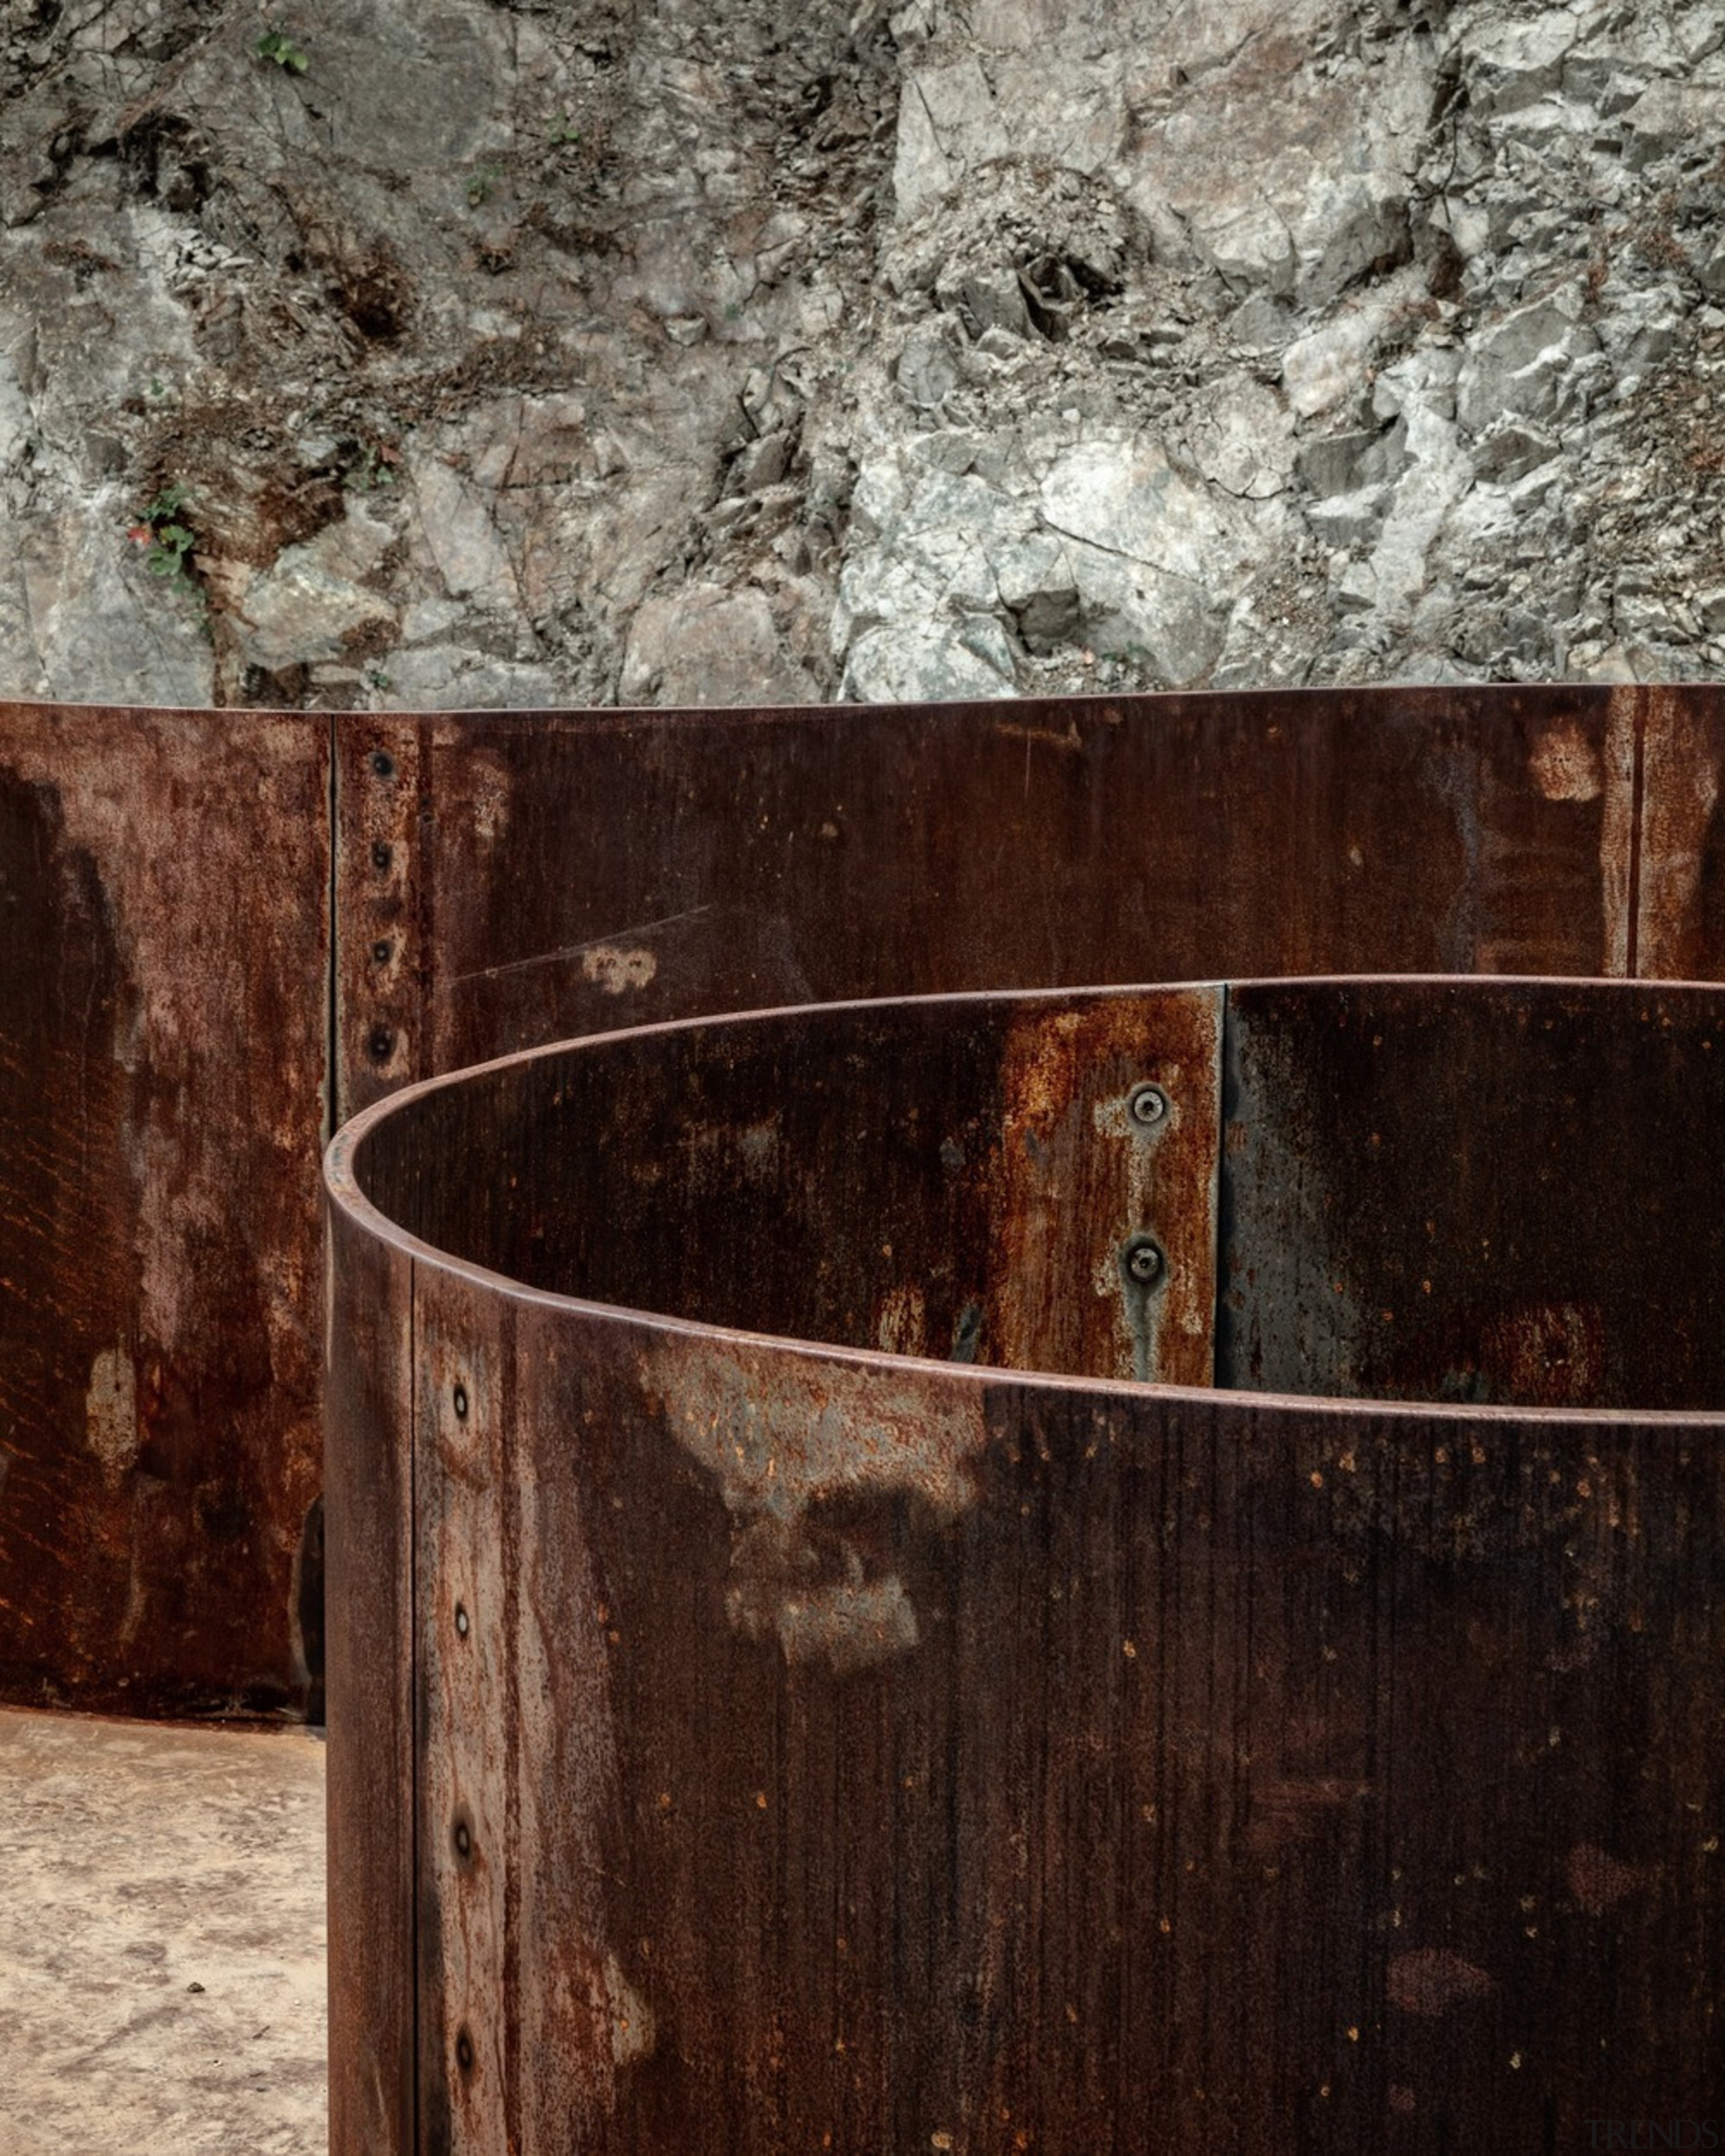 Industrial evocation doesn't get any grungier than with brown, gray